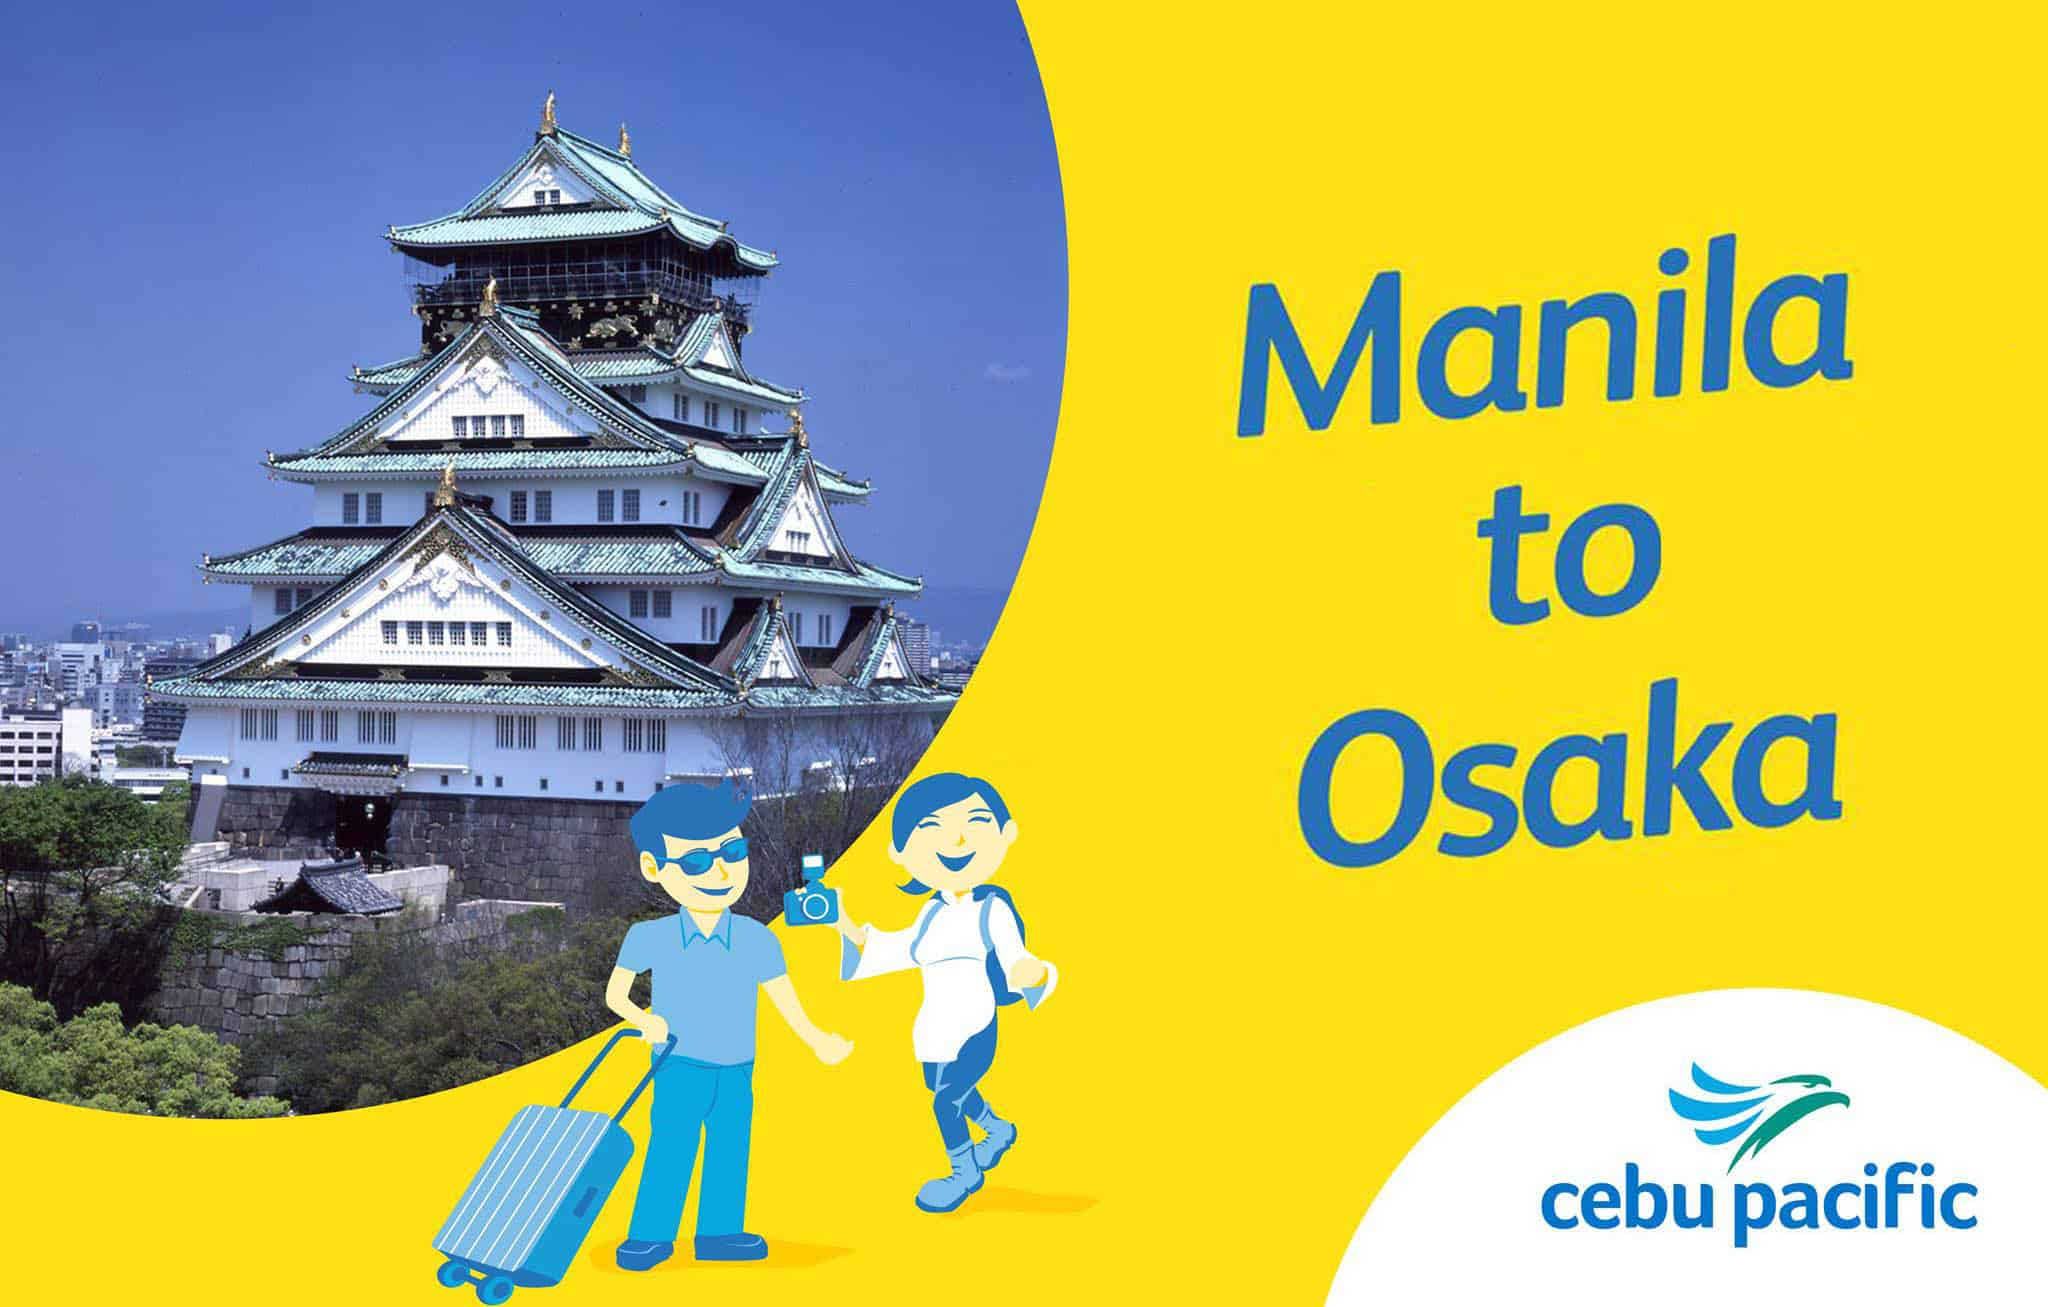 osaka-cebu-pacific-air